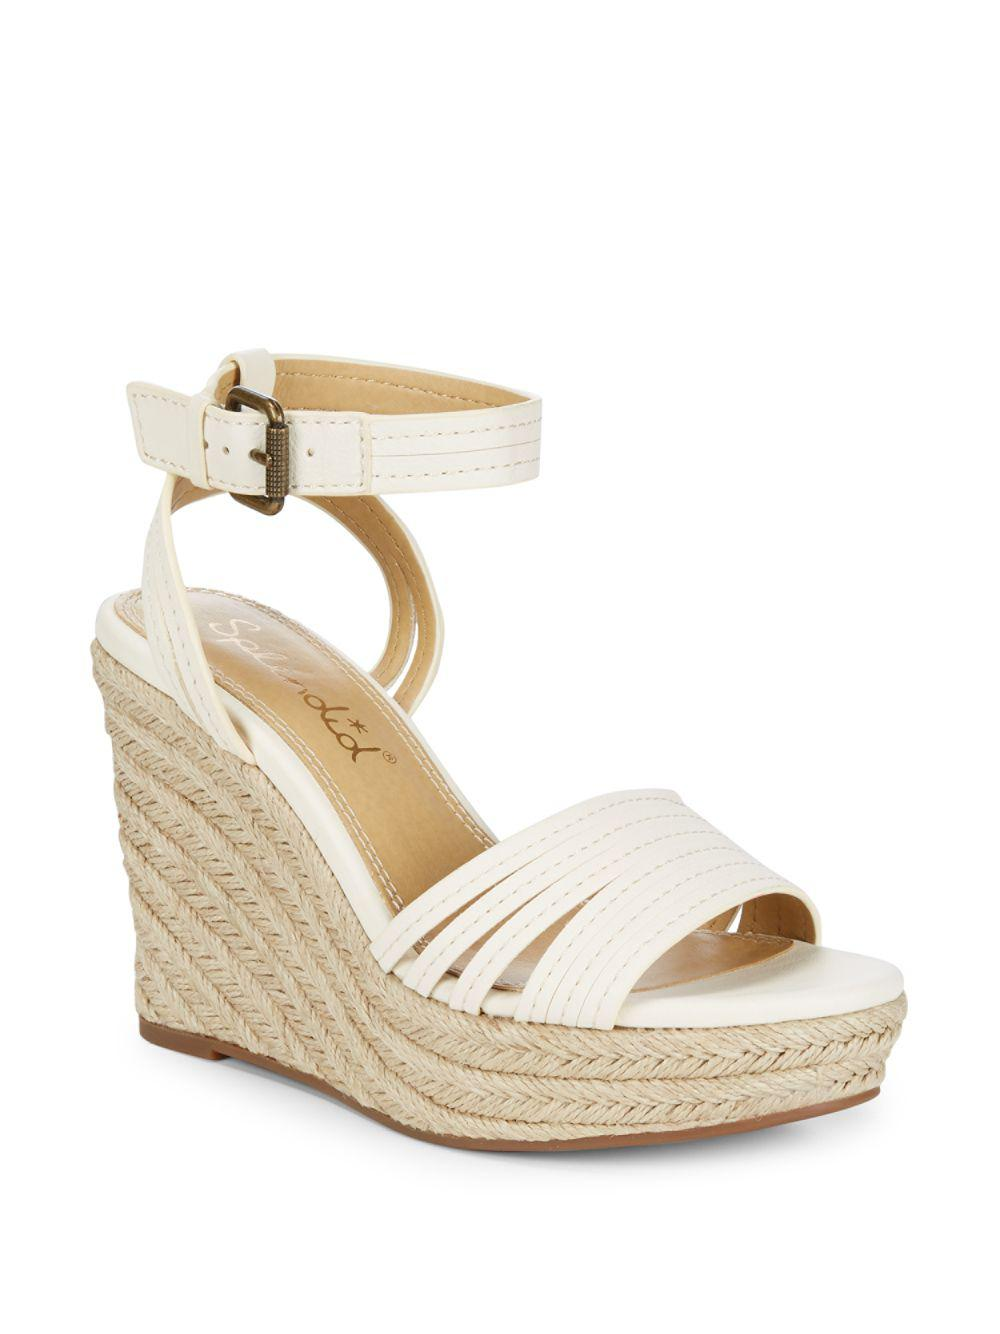 fb13639c8a2 Splendid Flemming Leather Espadrille Wedges in White - Lyst